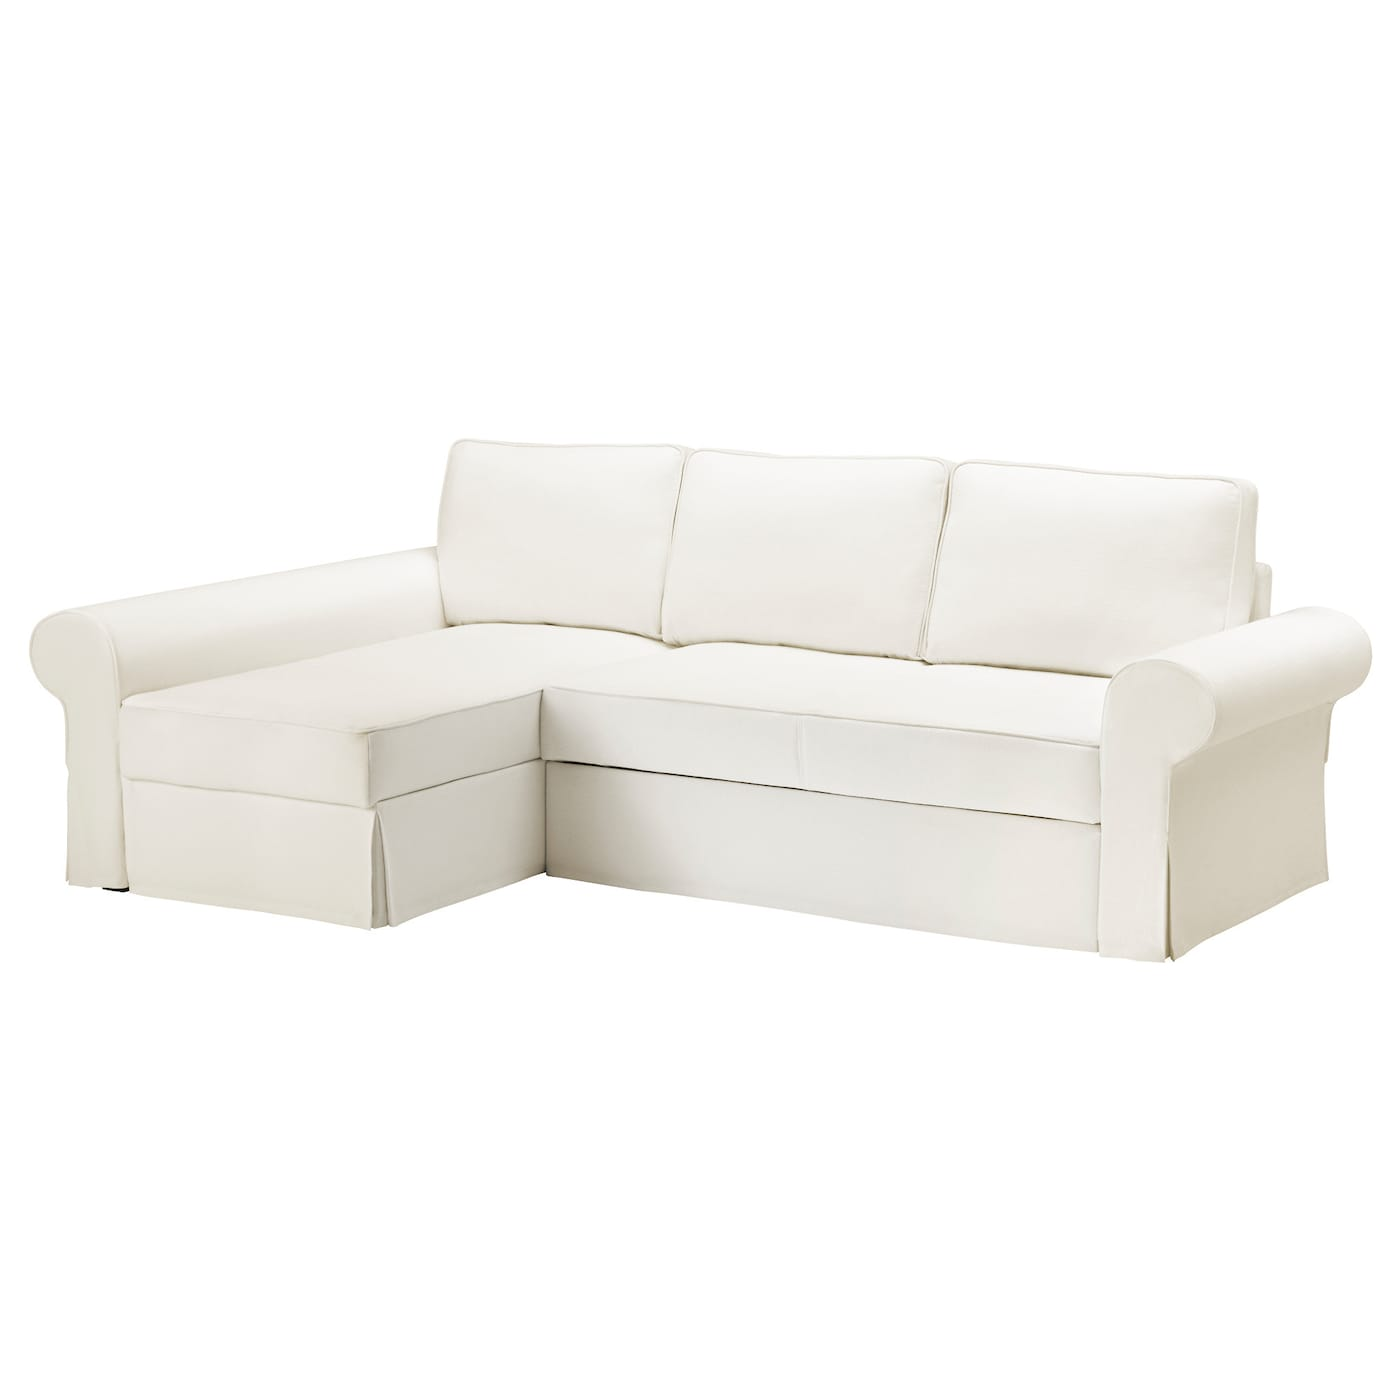 Backabro cover sofa bed with chaise longue hylte white ikea for Chaise couch cover